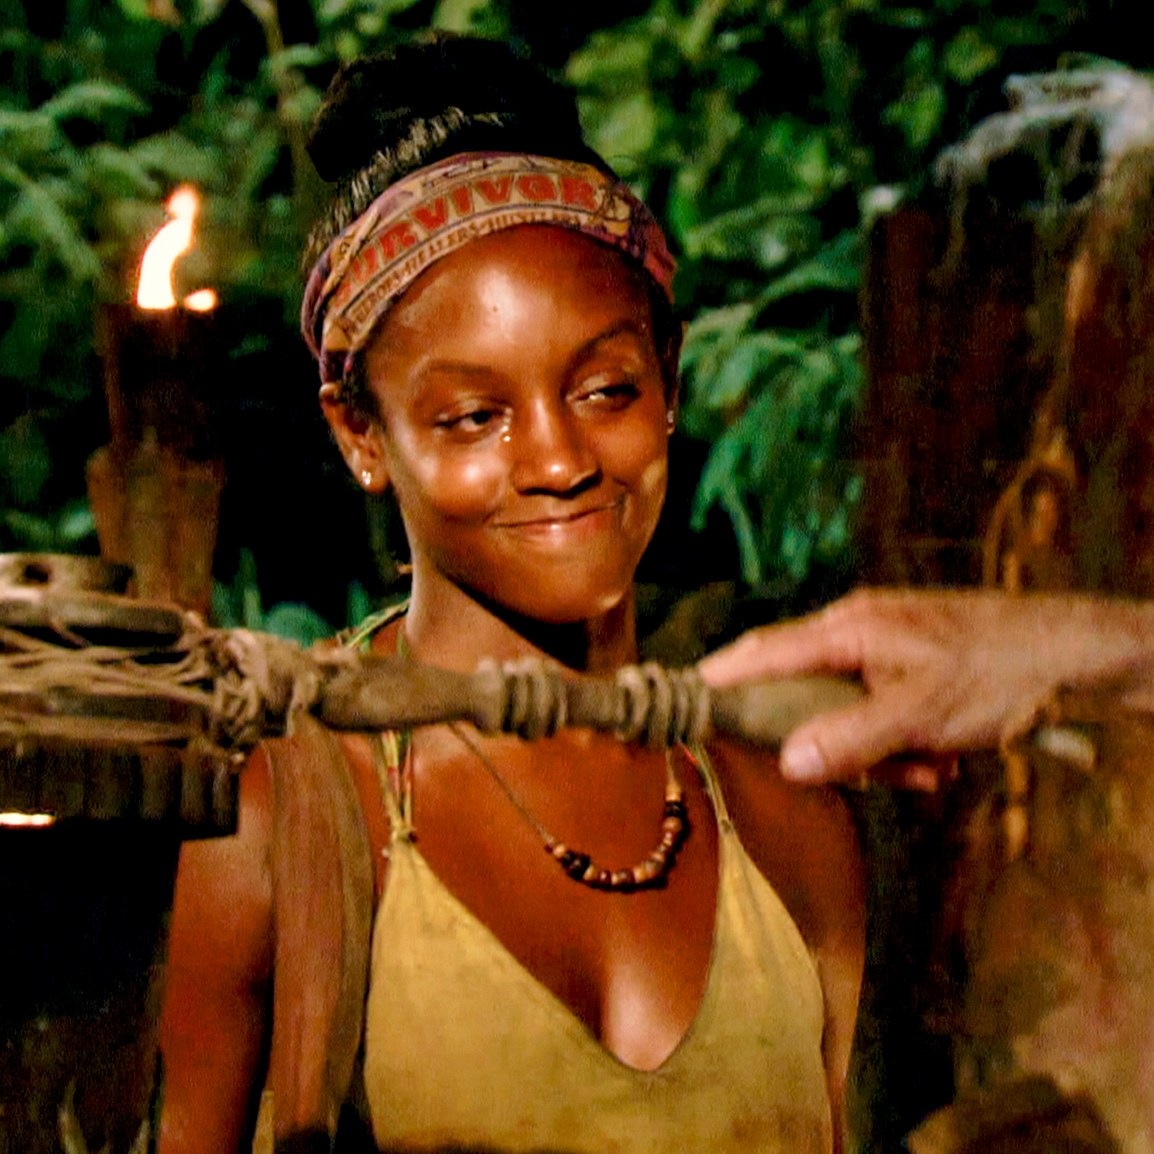 Jeff Probst extinguishes Desi Williams torch at Tribal Council on the eighth episode of Survivor themed Heroes vs. Healers vs. Hustlers